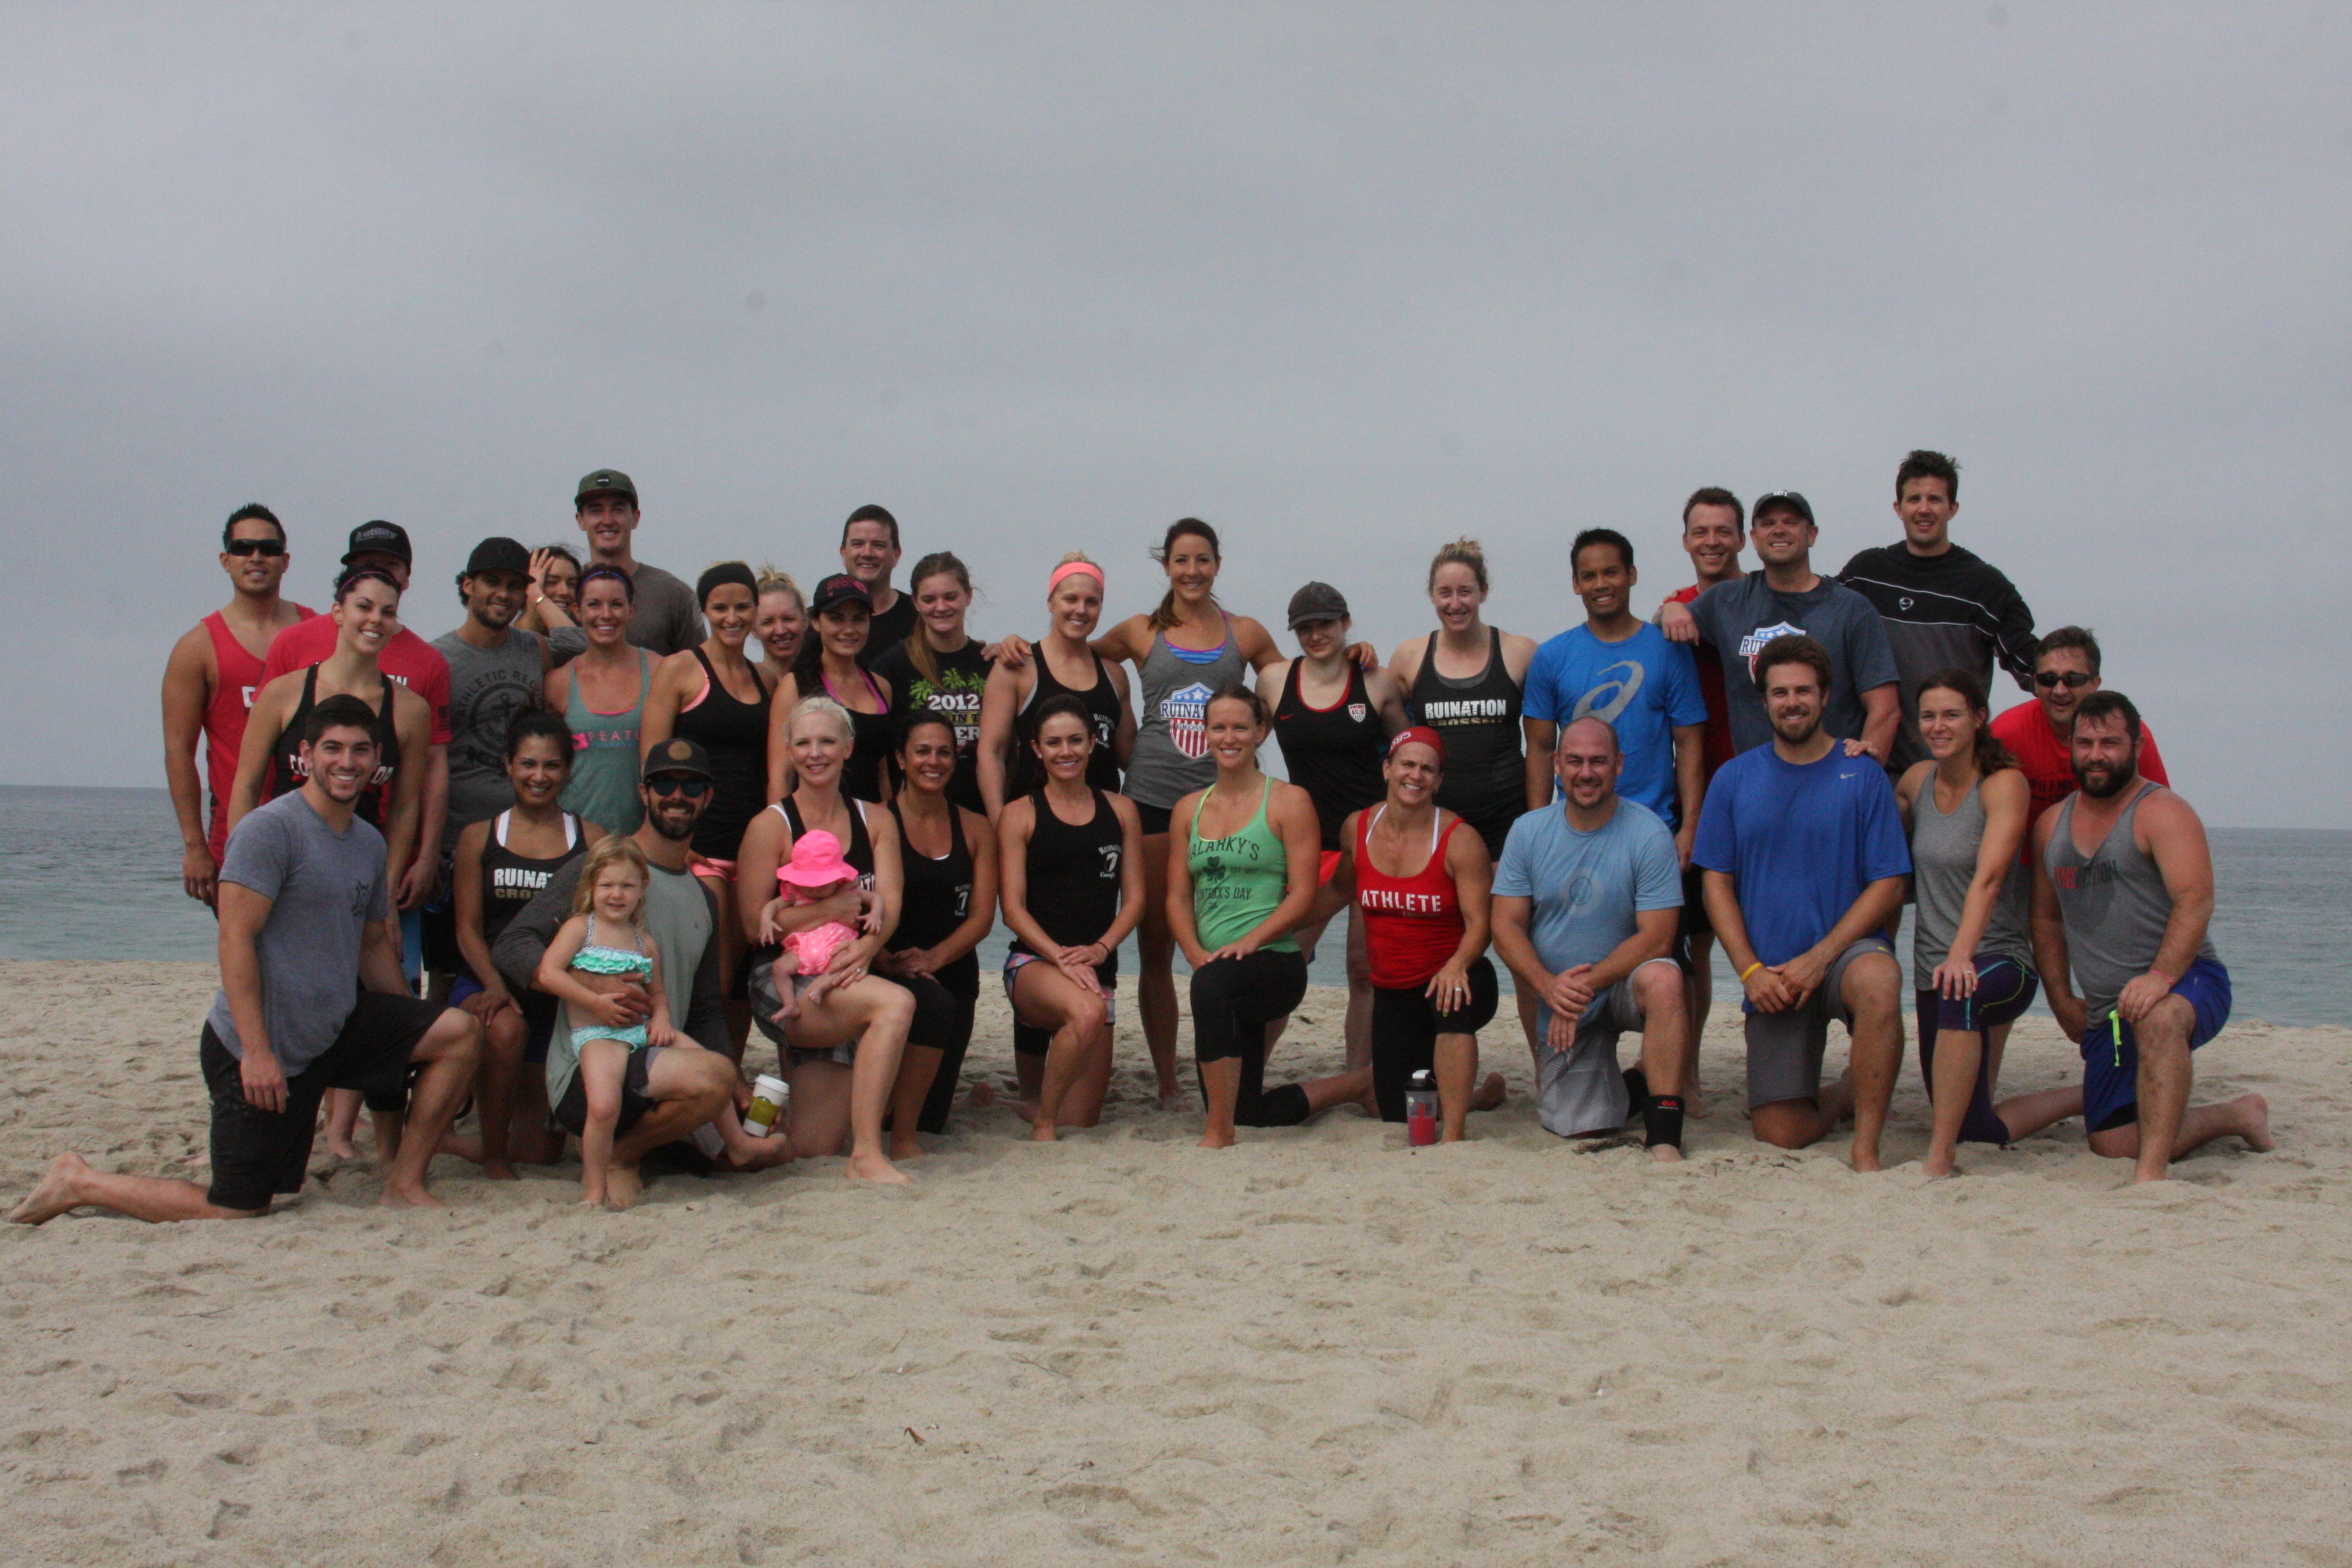 Great turn out for last Saturdays beach WOD